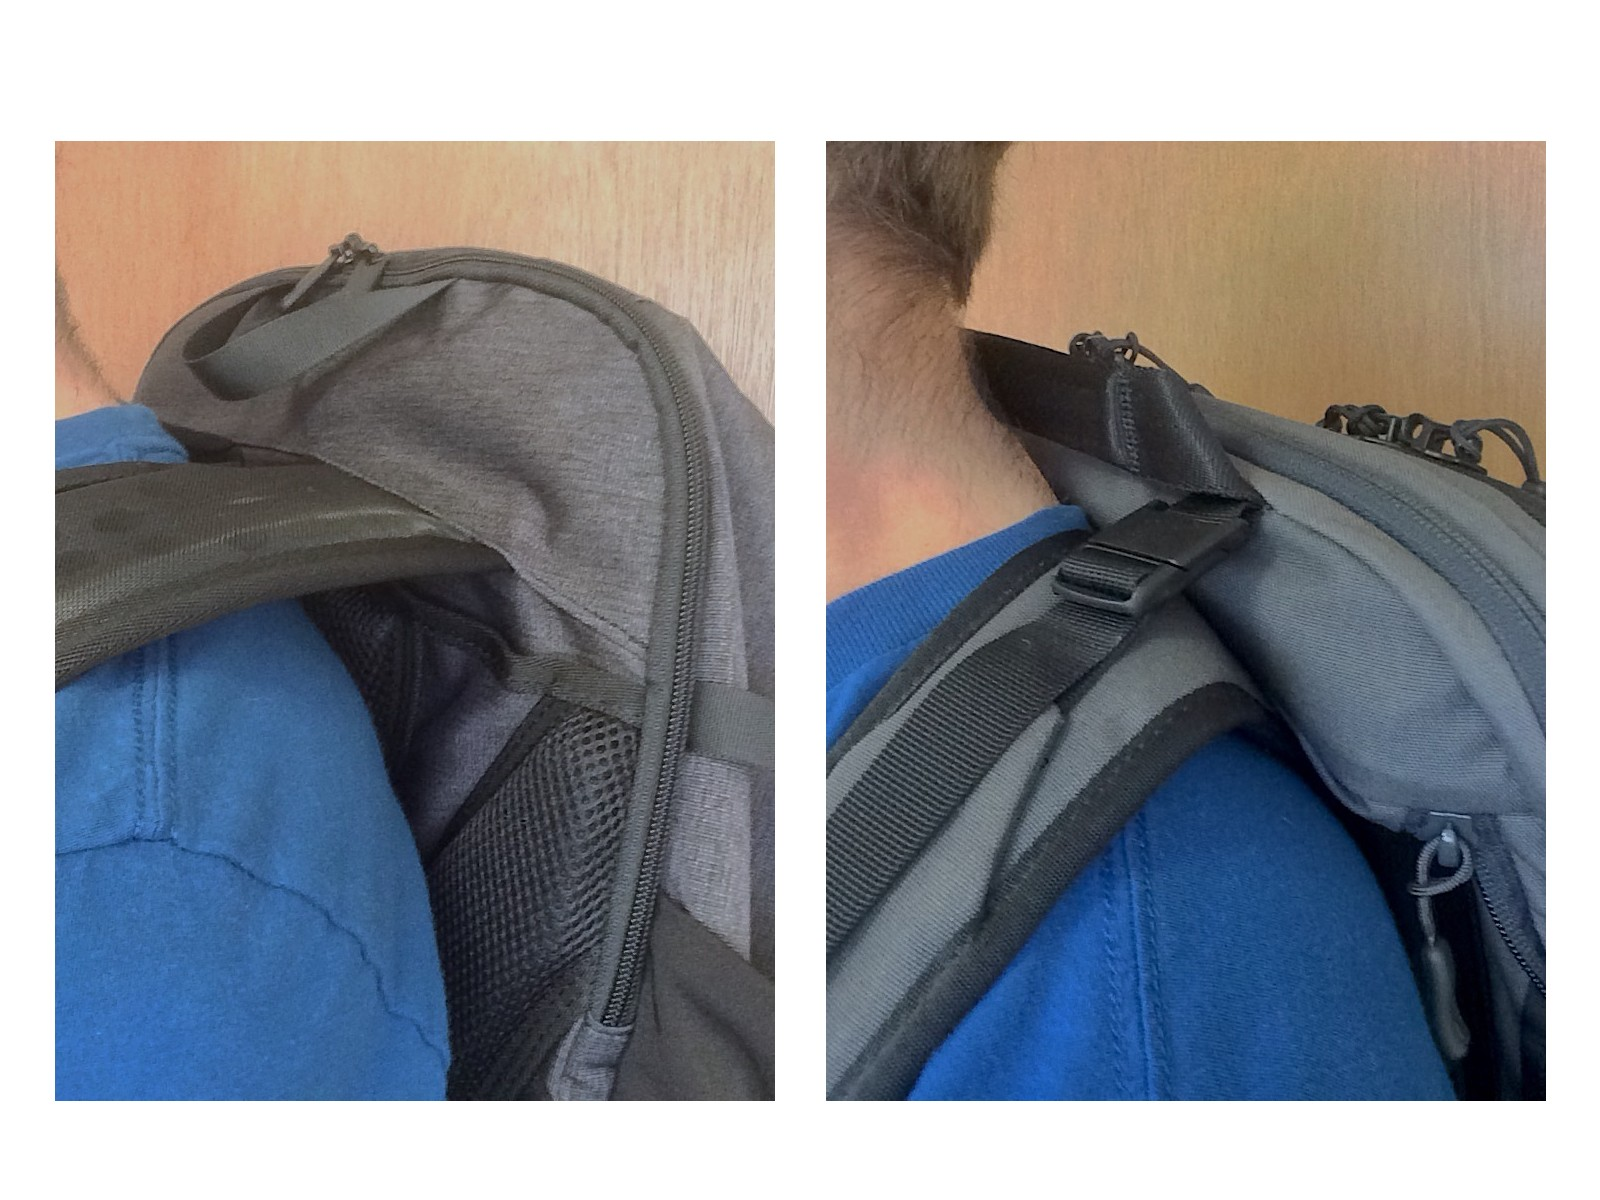 Tortuga Setout Backpack shoulder strap fit comparison